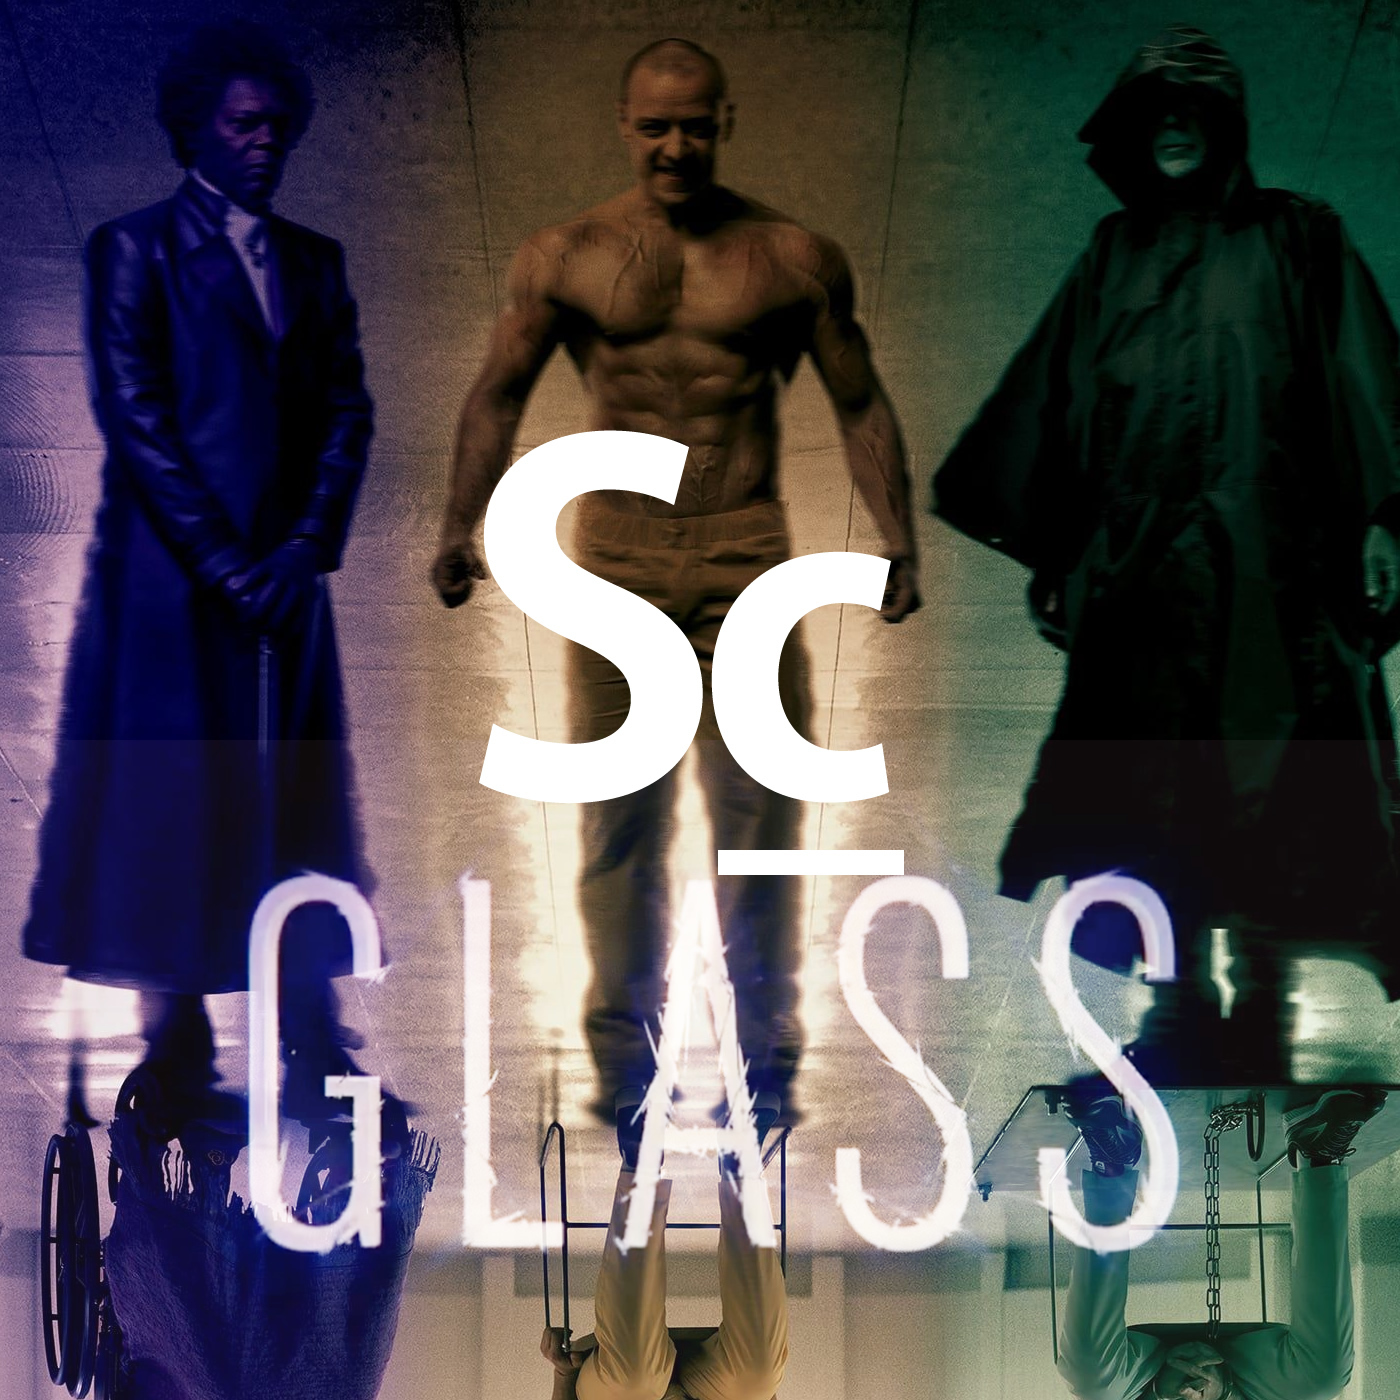 Glass by West Dylan Thordson (Ep. 130)